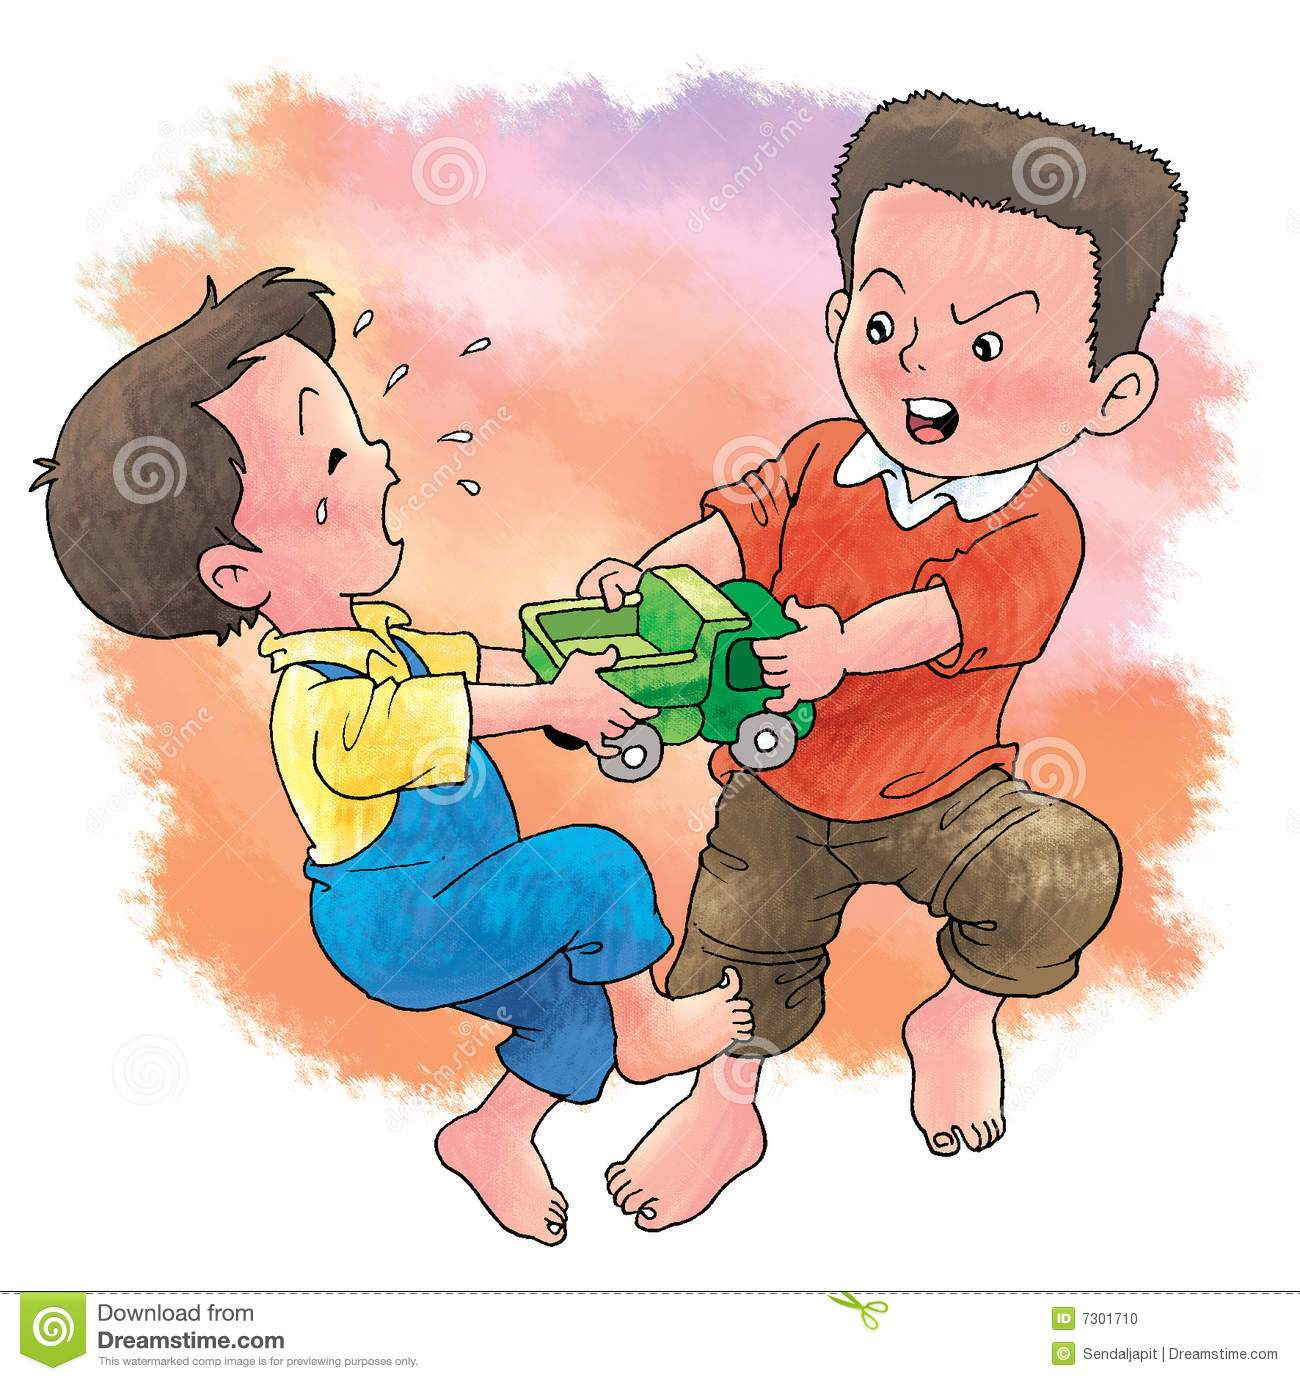 Kids fighting over toys clipart 6 » Clipart Portal.